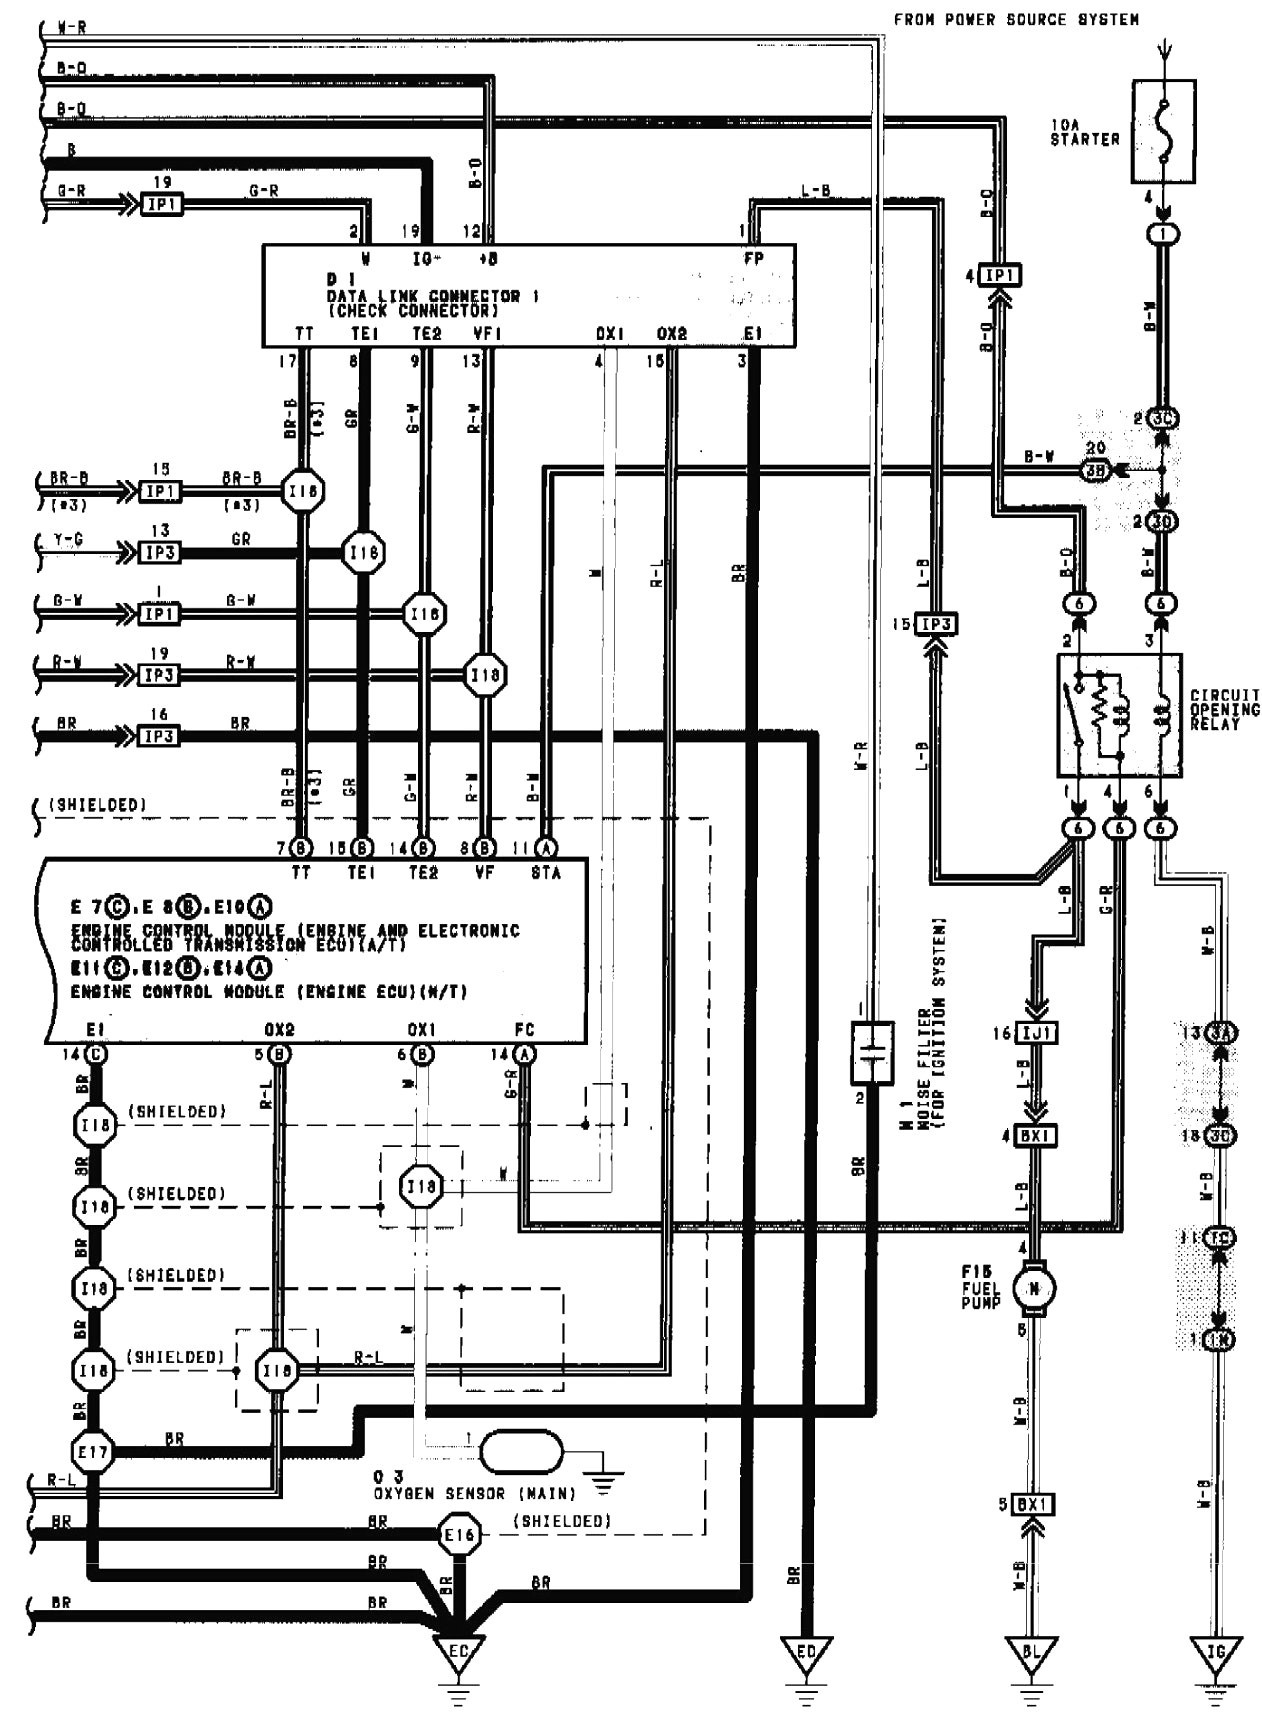 3sgte Wiring Diagram Page 2 And Schematics 1988 Toyota Pickup Corolla Likewise Ecu Rh Prixdelor Co